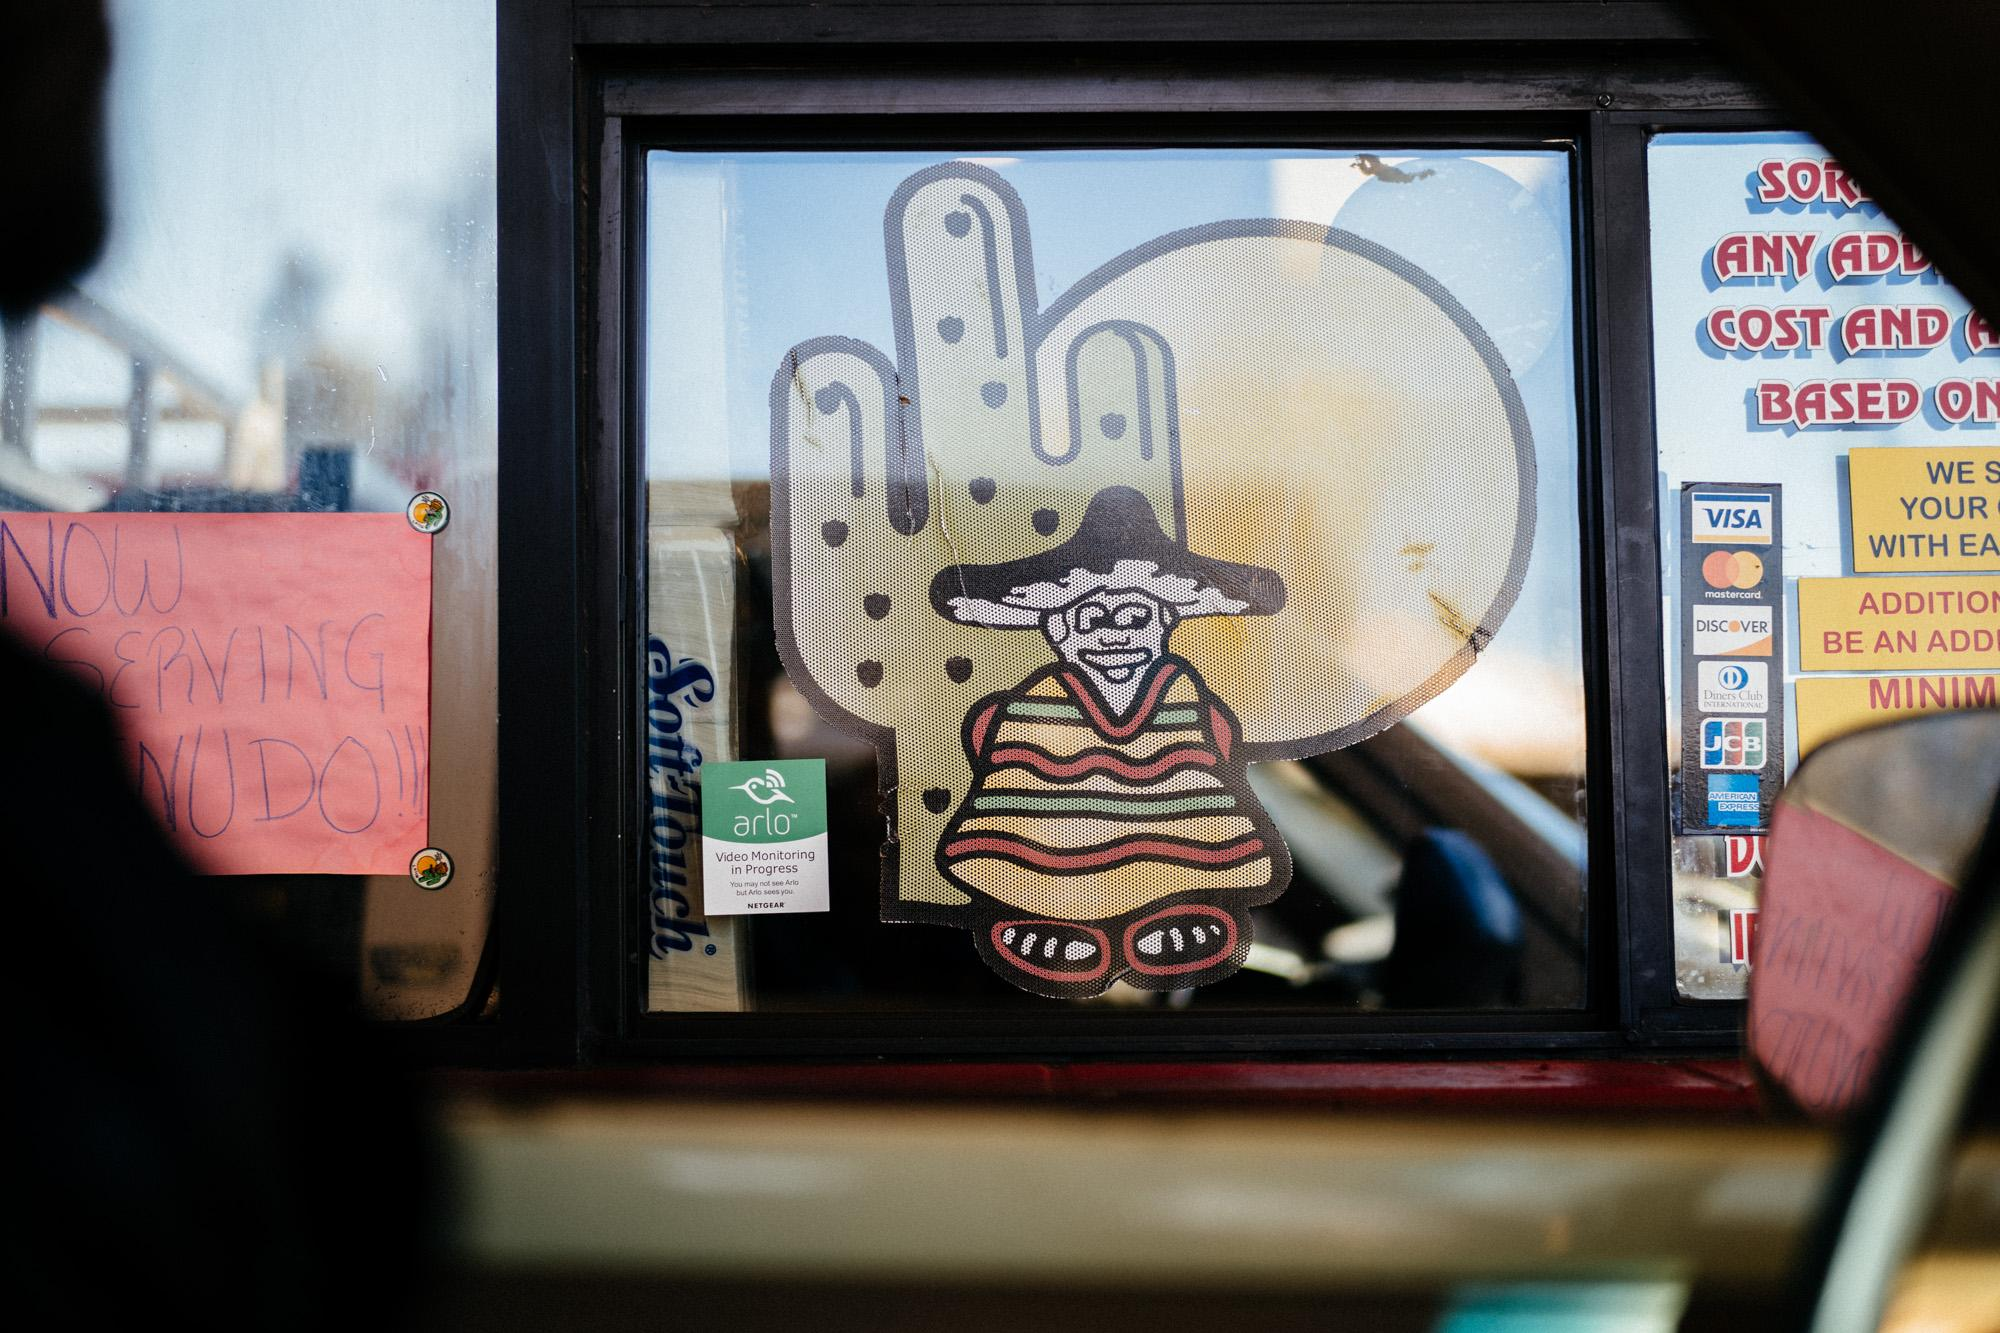 Random Taco Shop Drive Thru Window